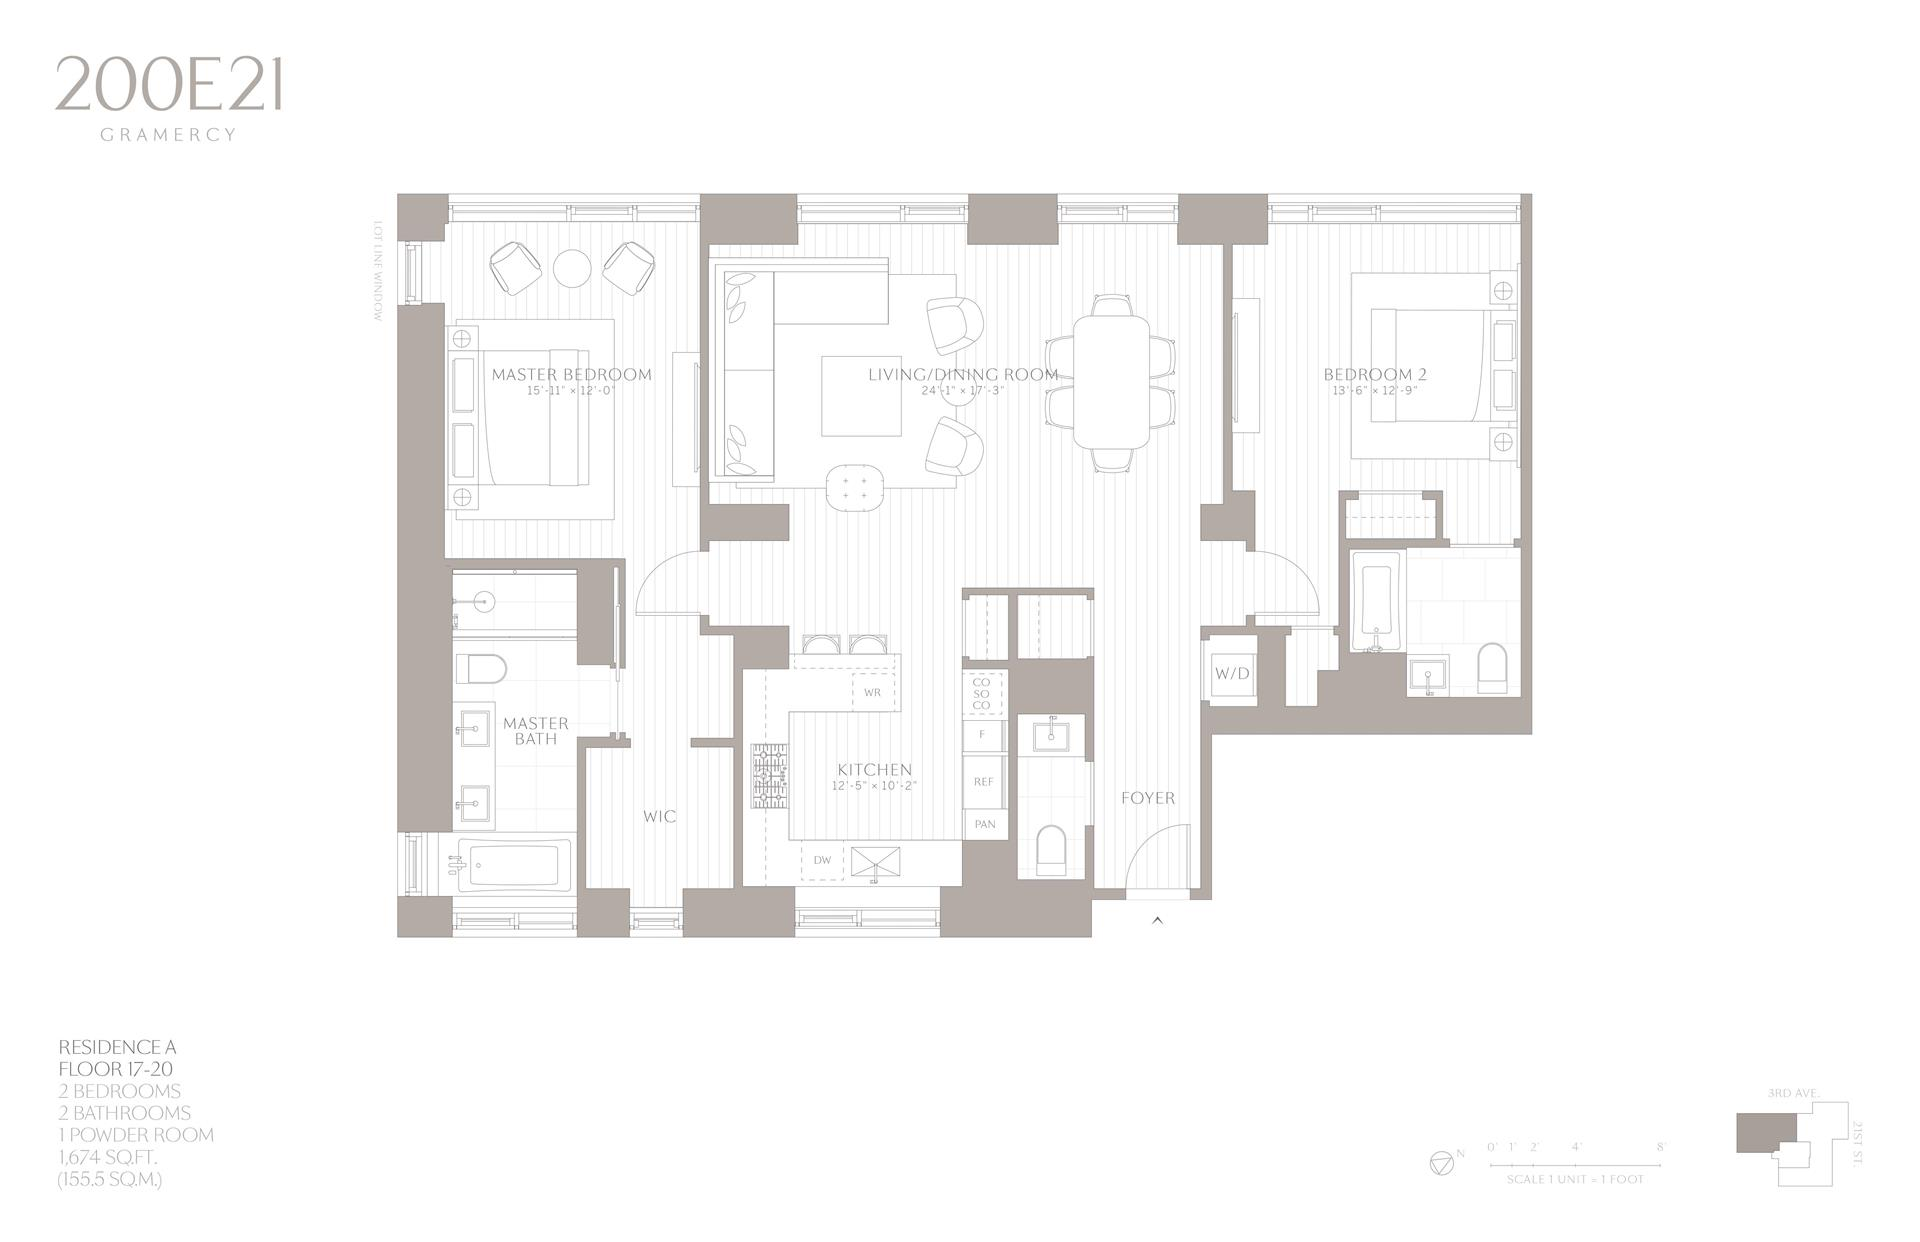 Floor plan of 200 East 21st Street, 20A - Gramercy - Union Square, New York